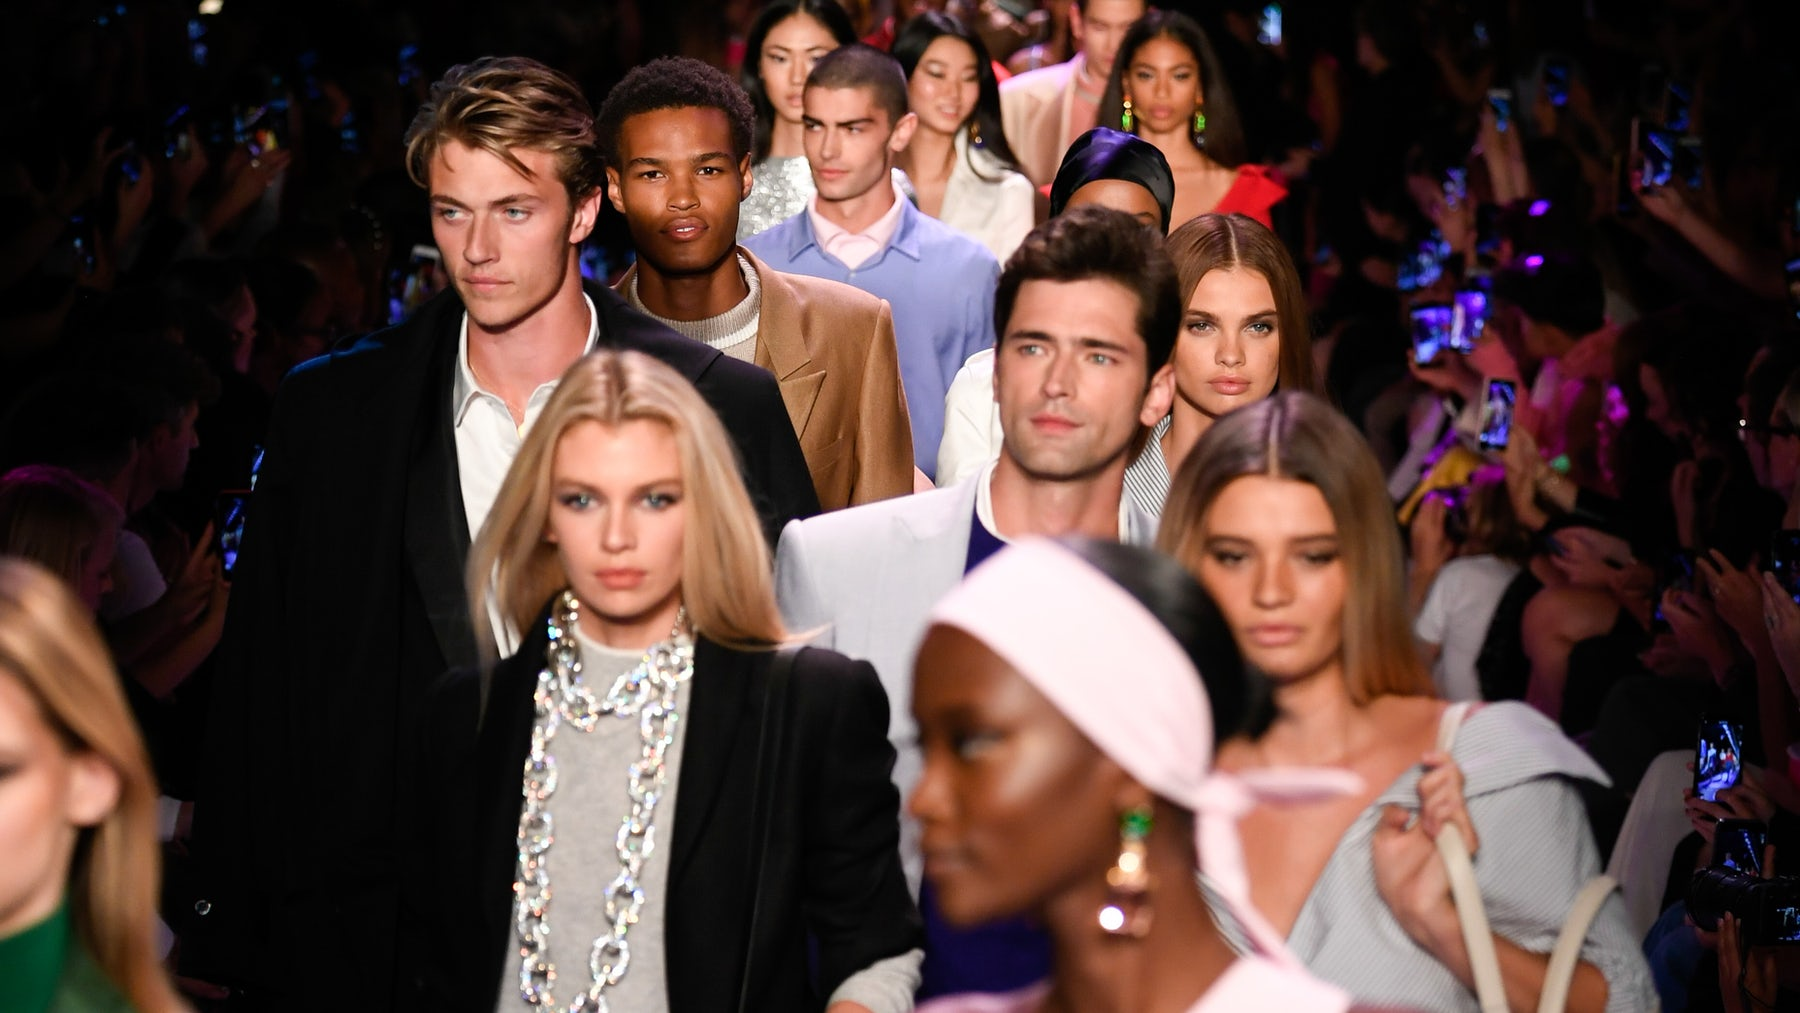 Two New York Showmen Question the Value of Approval at NYFW